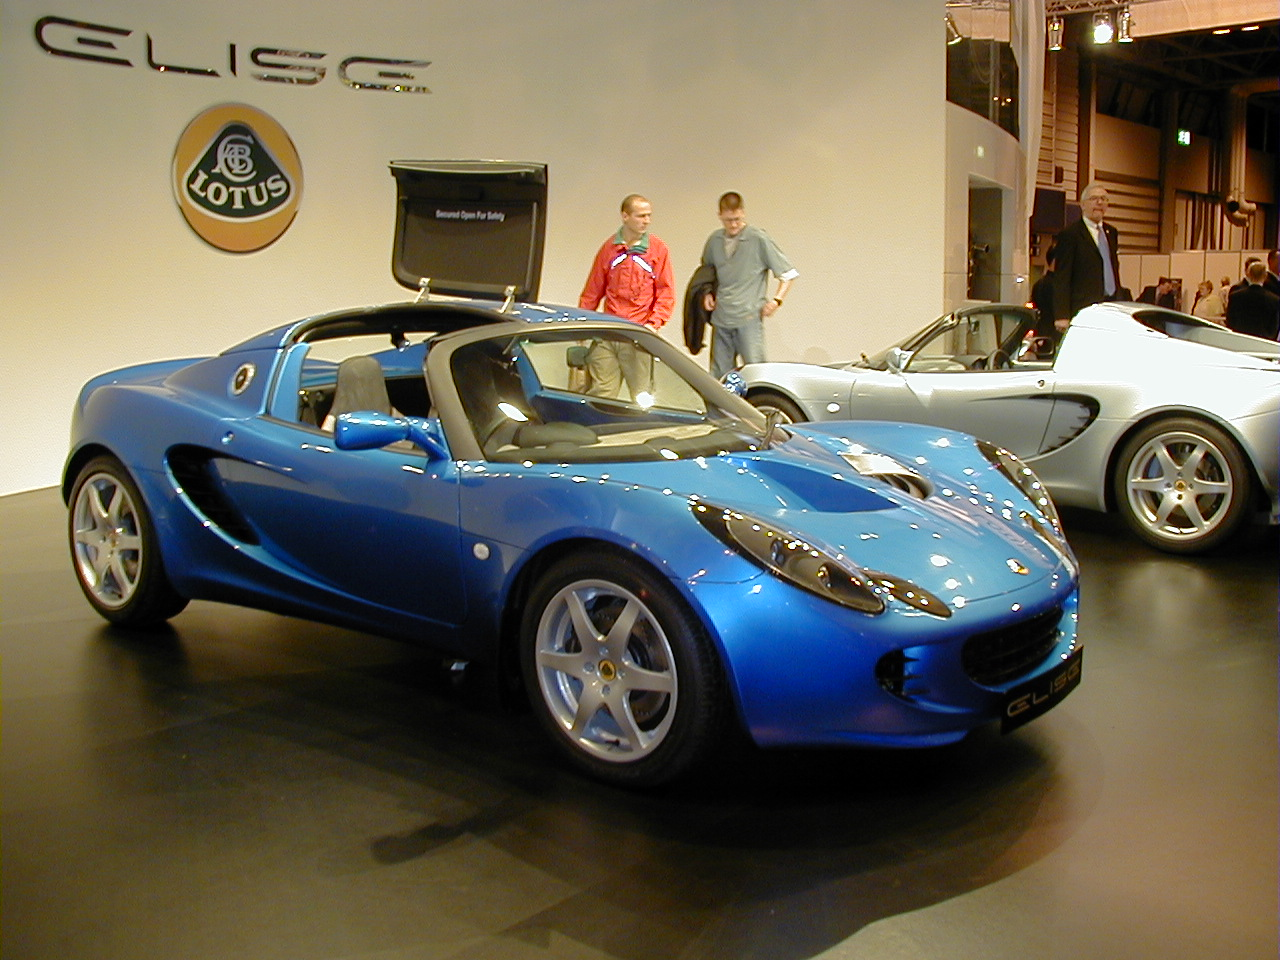 My Lotus Elise Owners Diary October 2000